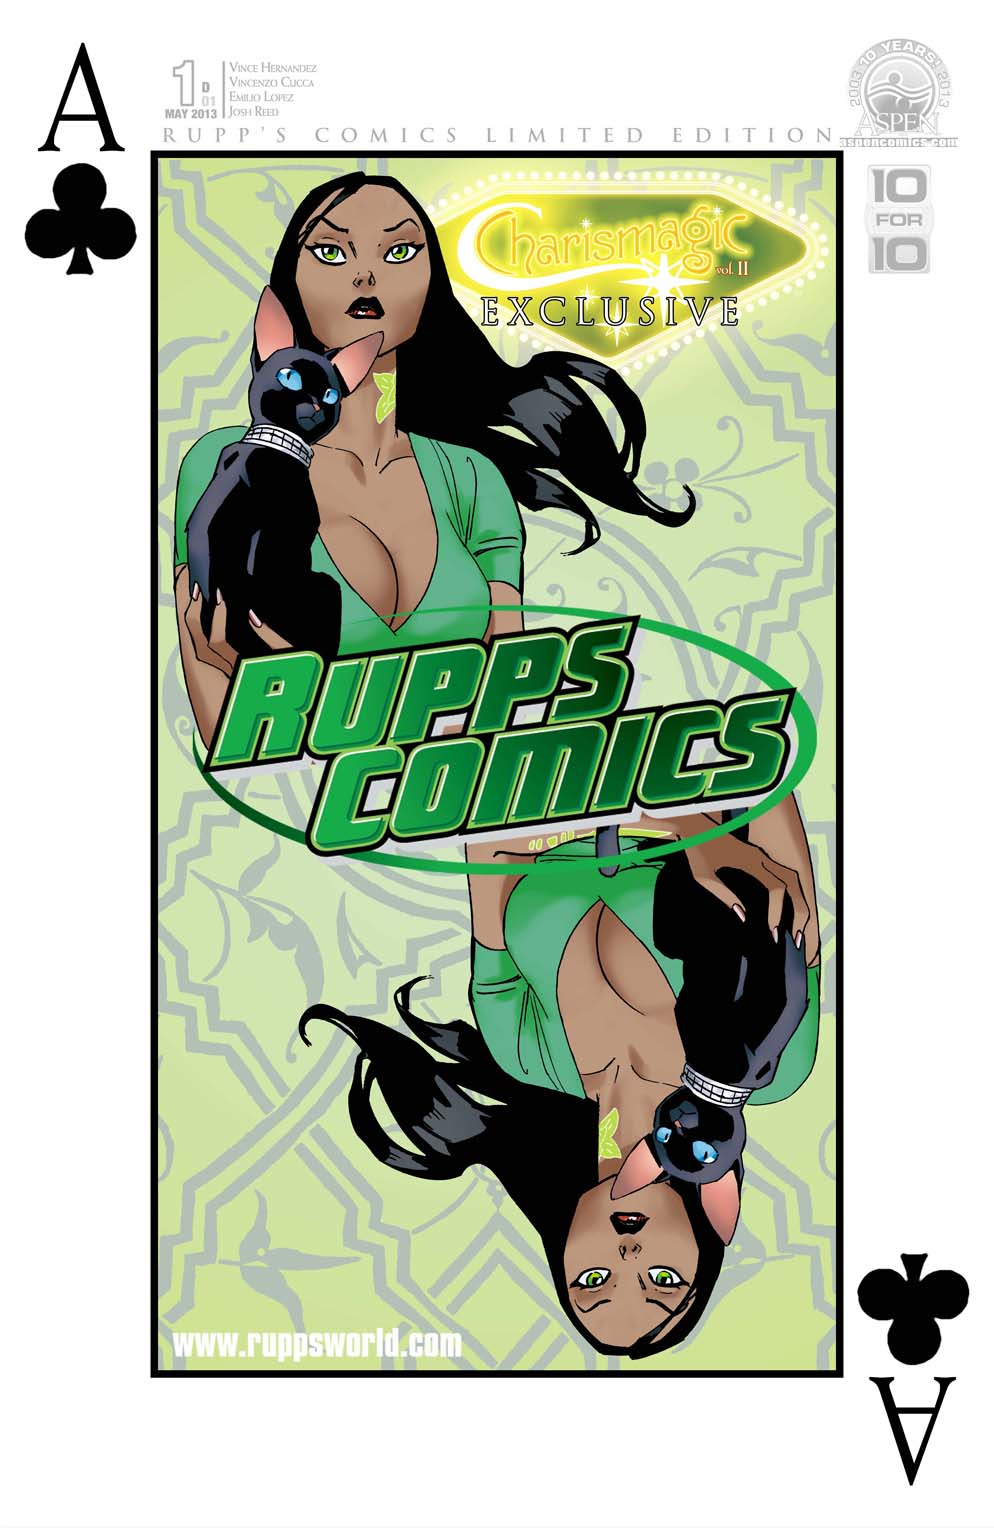 00d-00_CHV2-01-rupp1562BE9 CHARISMAGIC #1 features personalized retailer exclusive covers